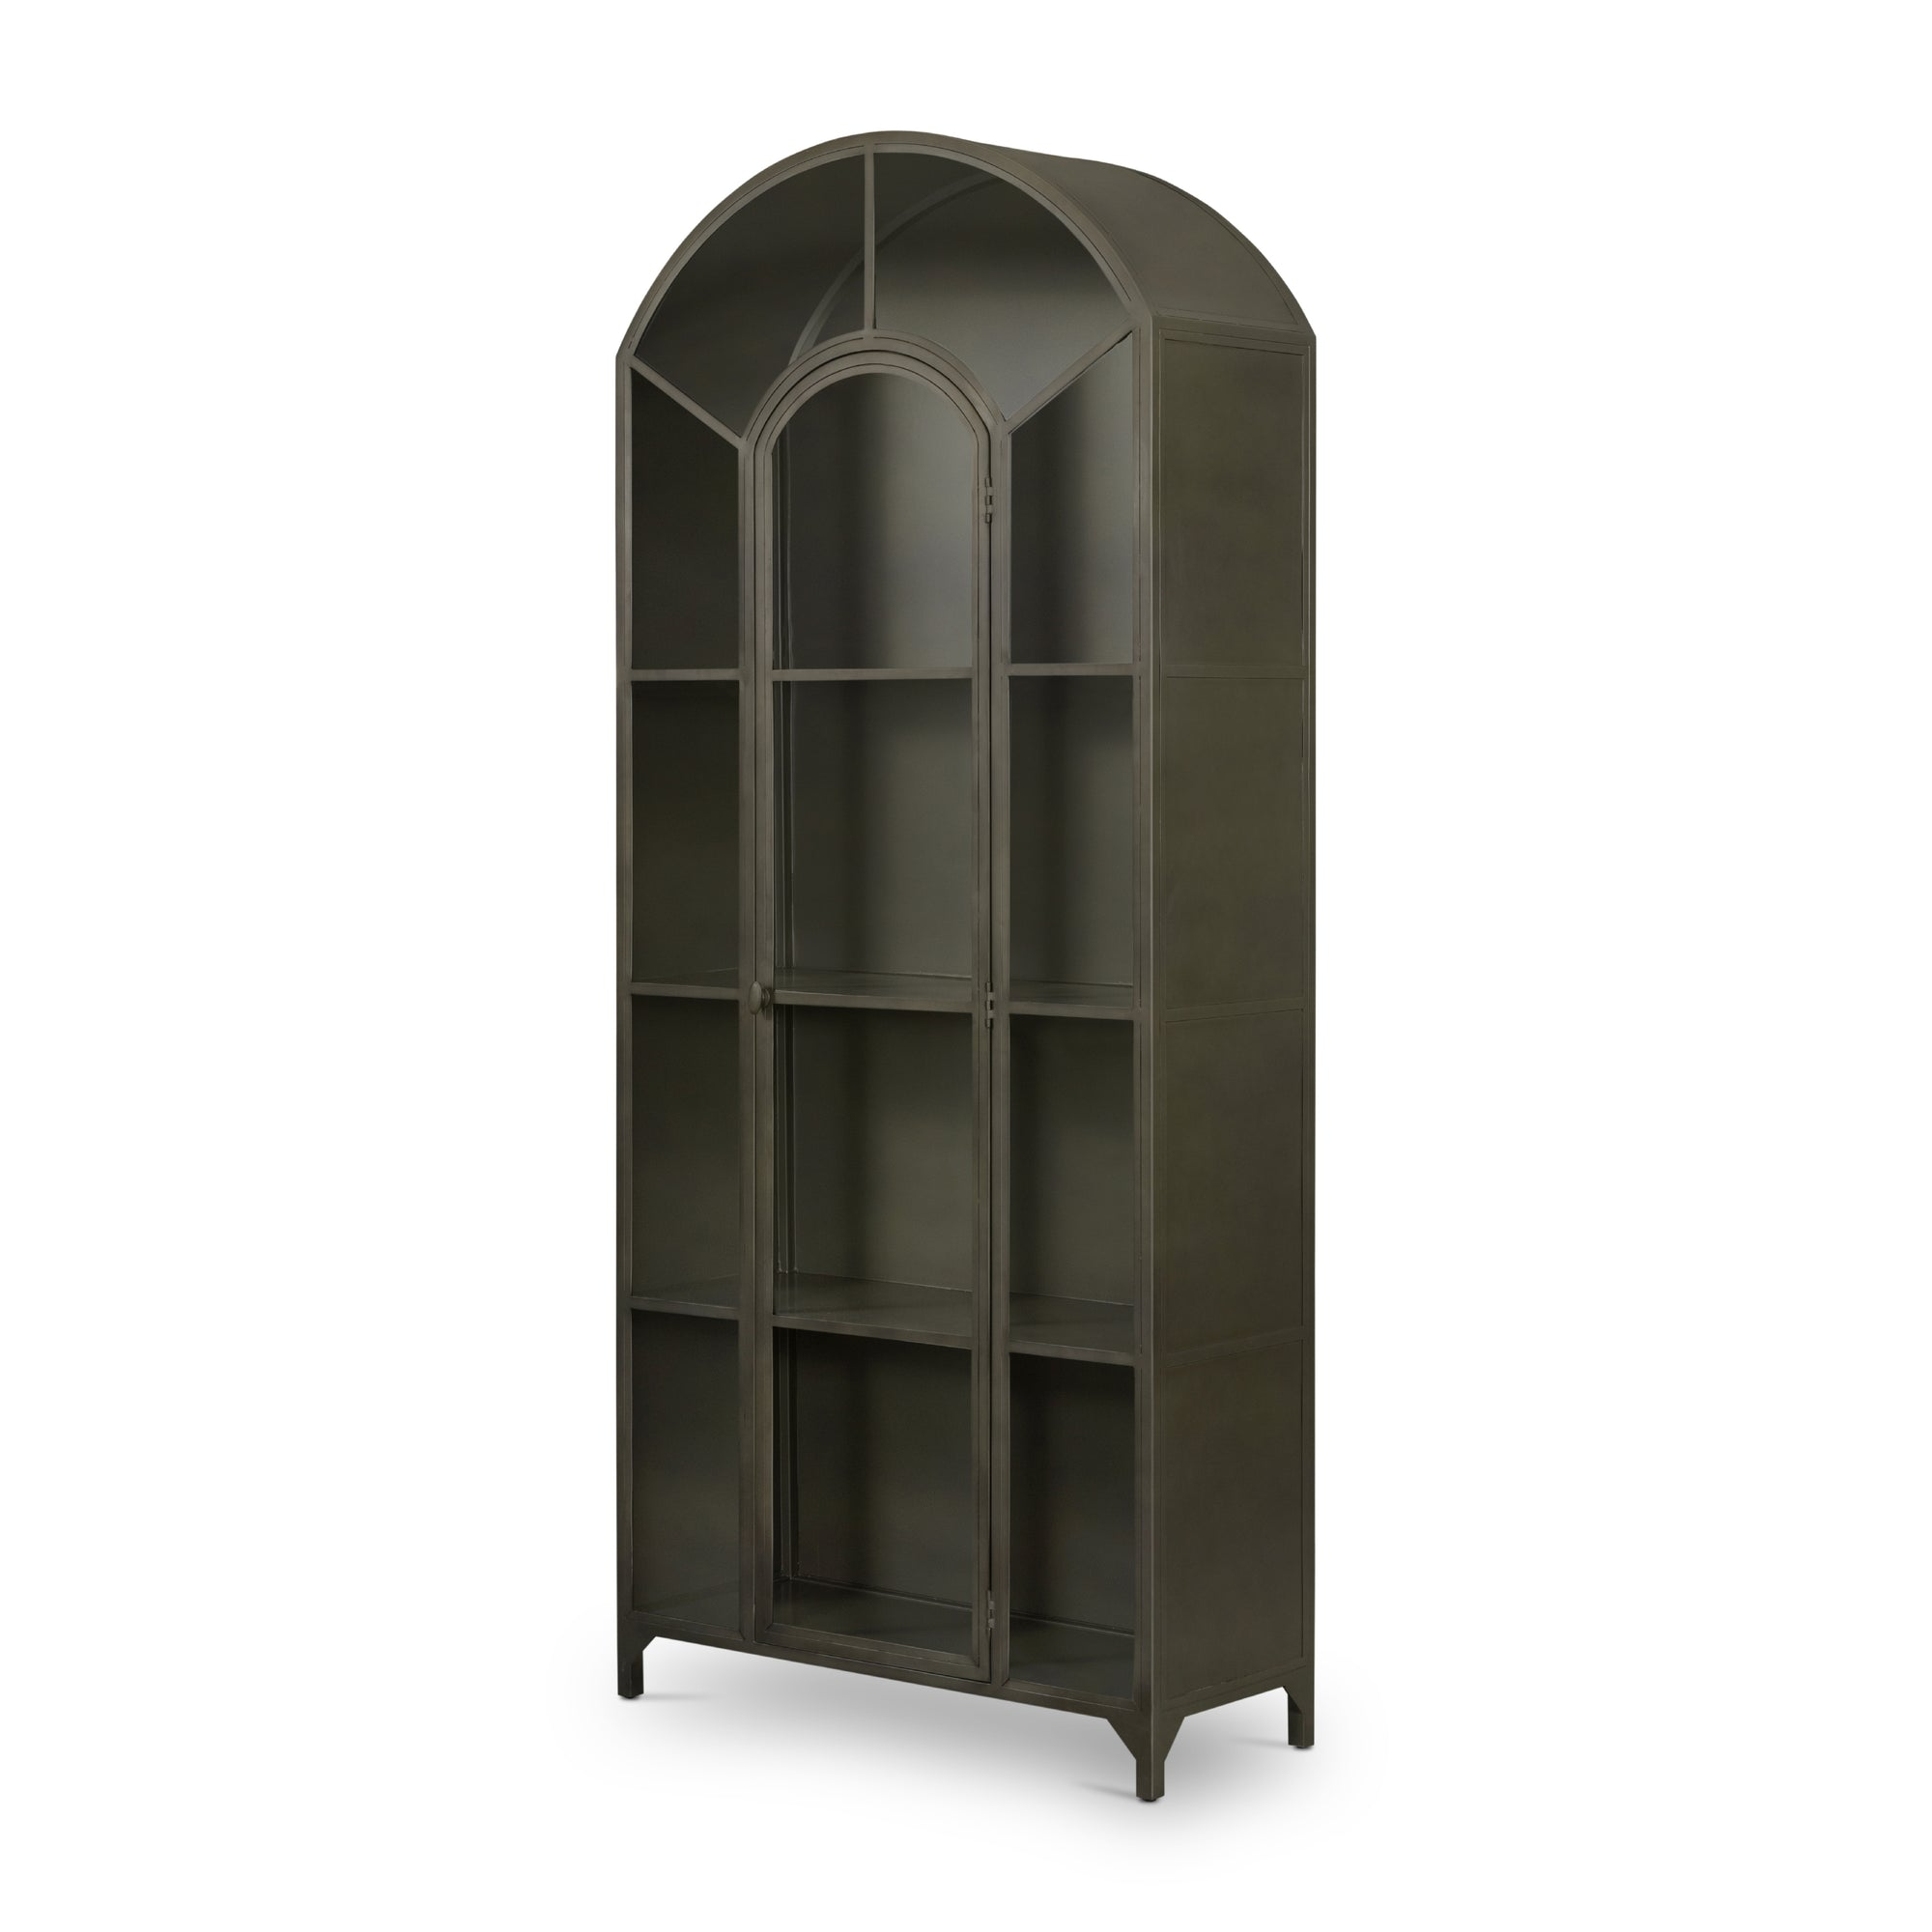 Beatty Gunmetal Cabinet